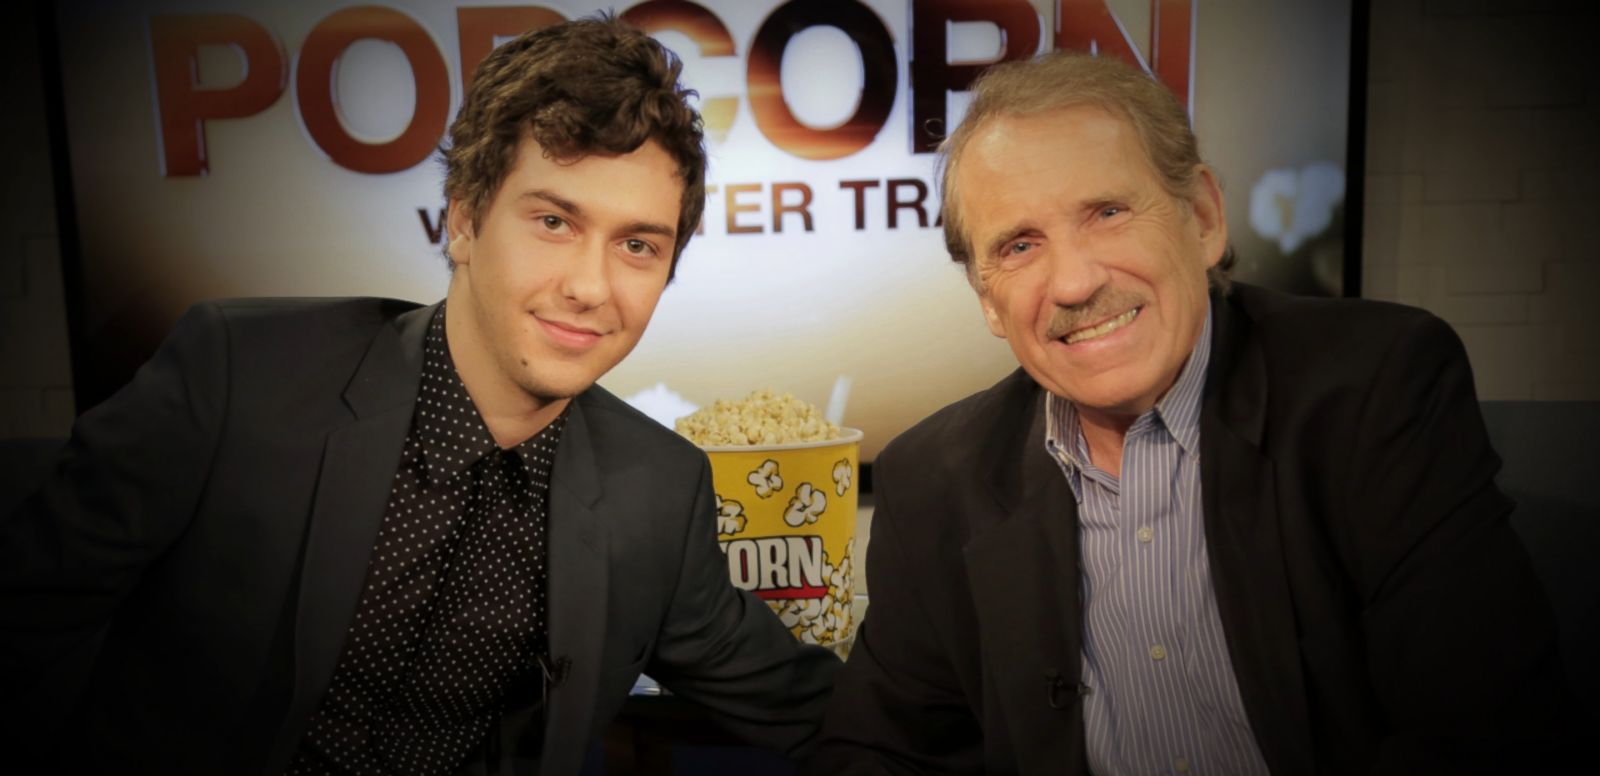 VIDEO: How Robert De Niro Pranked 'Paper Towns' star Nat Wolff